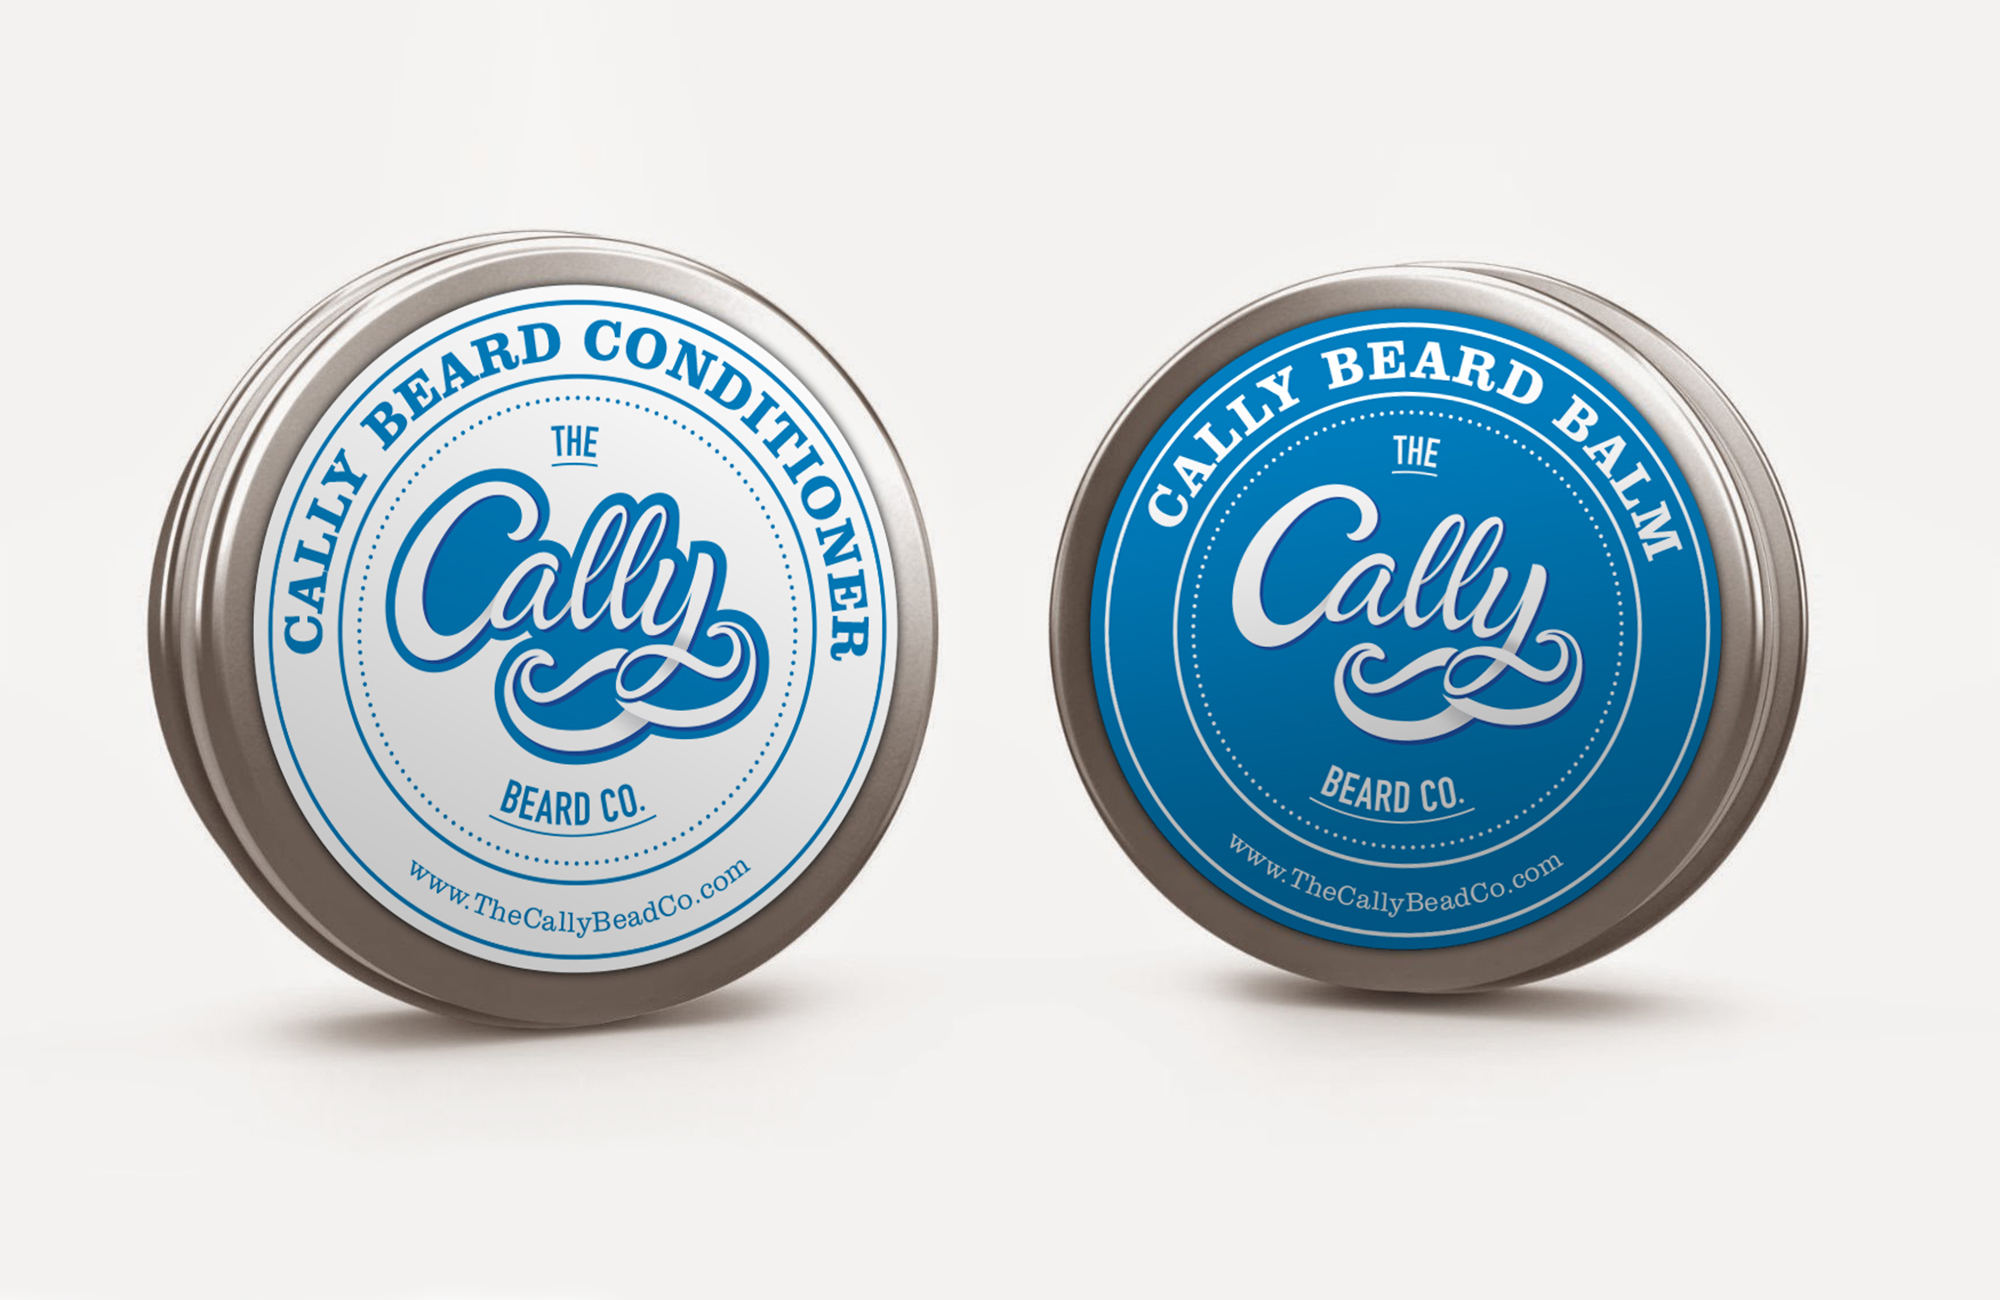 6_Cally Beard Packaging_2000x1300.jpg